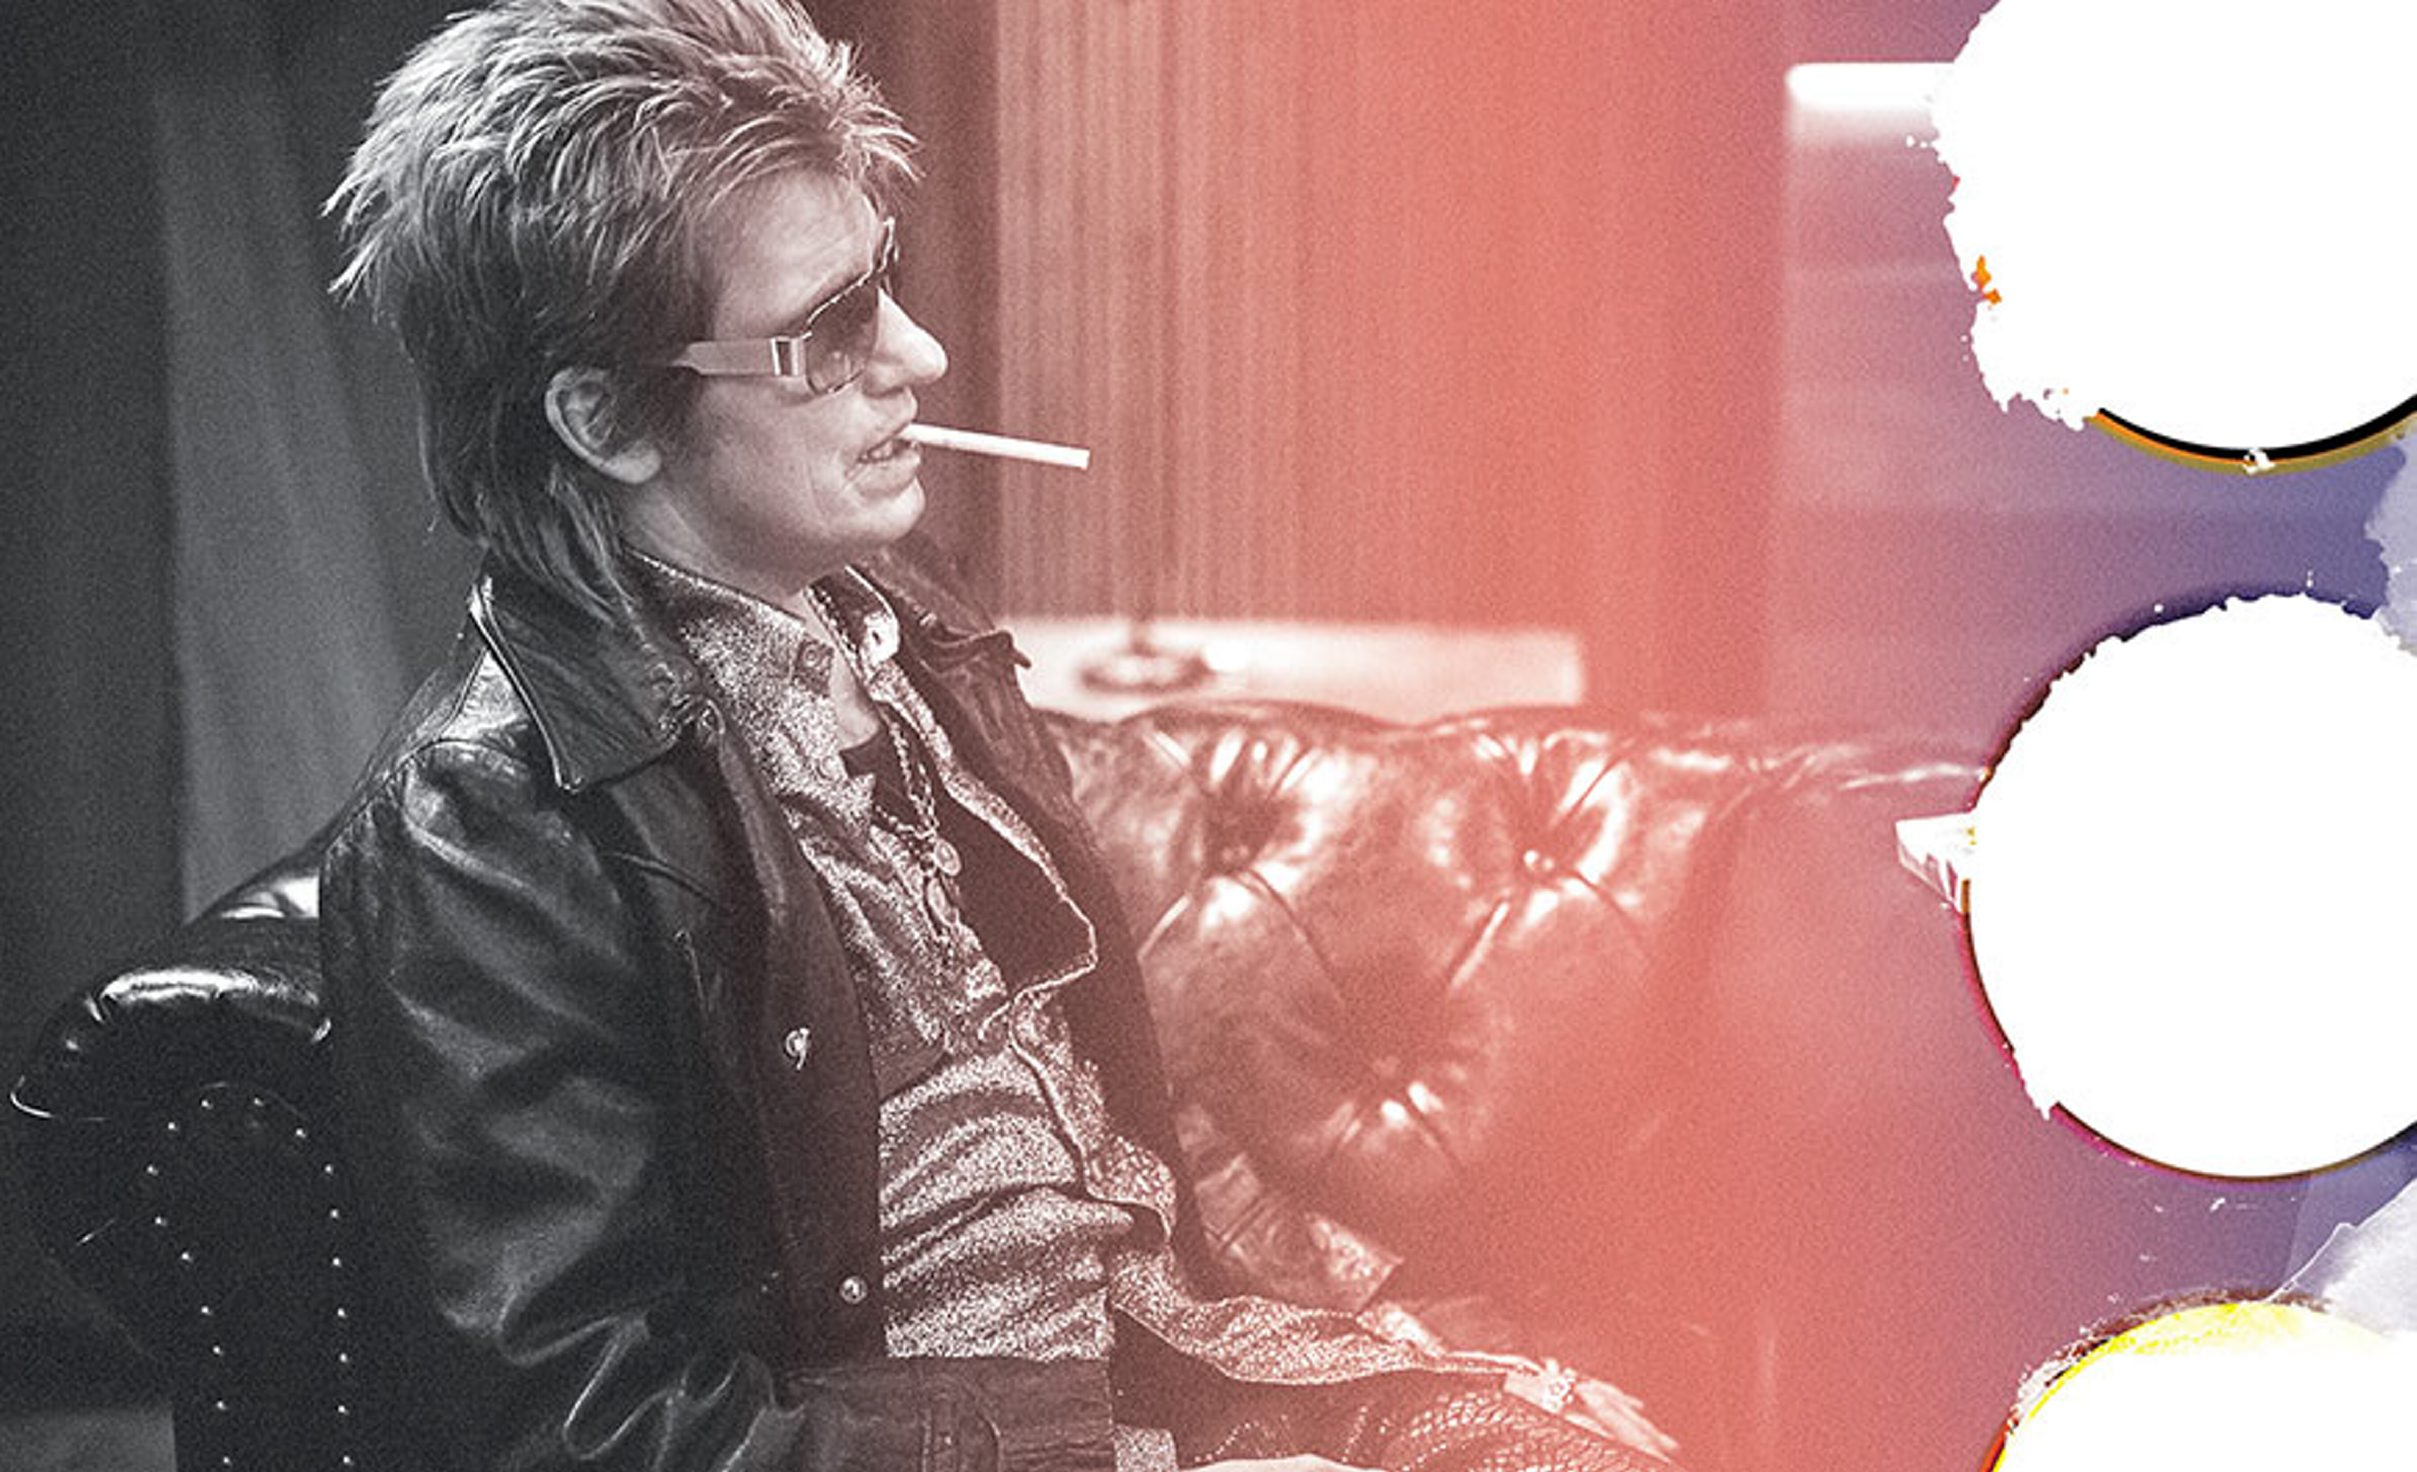 """Denis Leary stars as an aging rocker in the new FX series """"Sex, Drugs and Rock and Roll,"""" which premieres at 10 p.m. Thursday."""